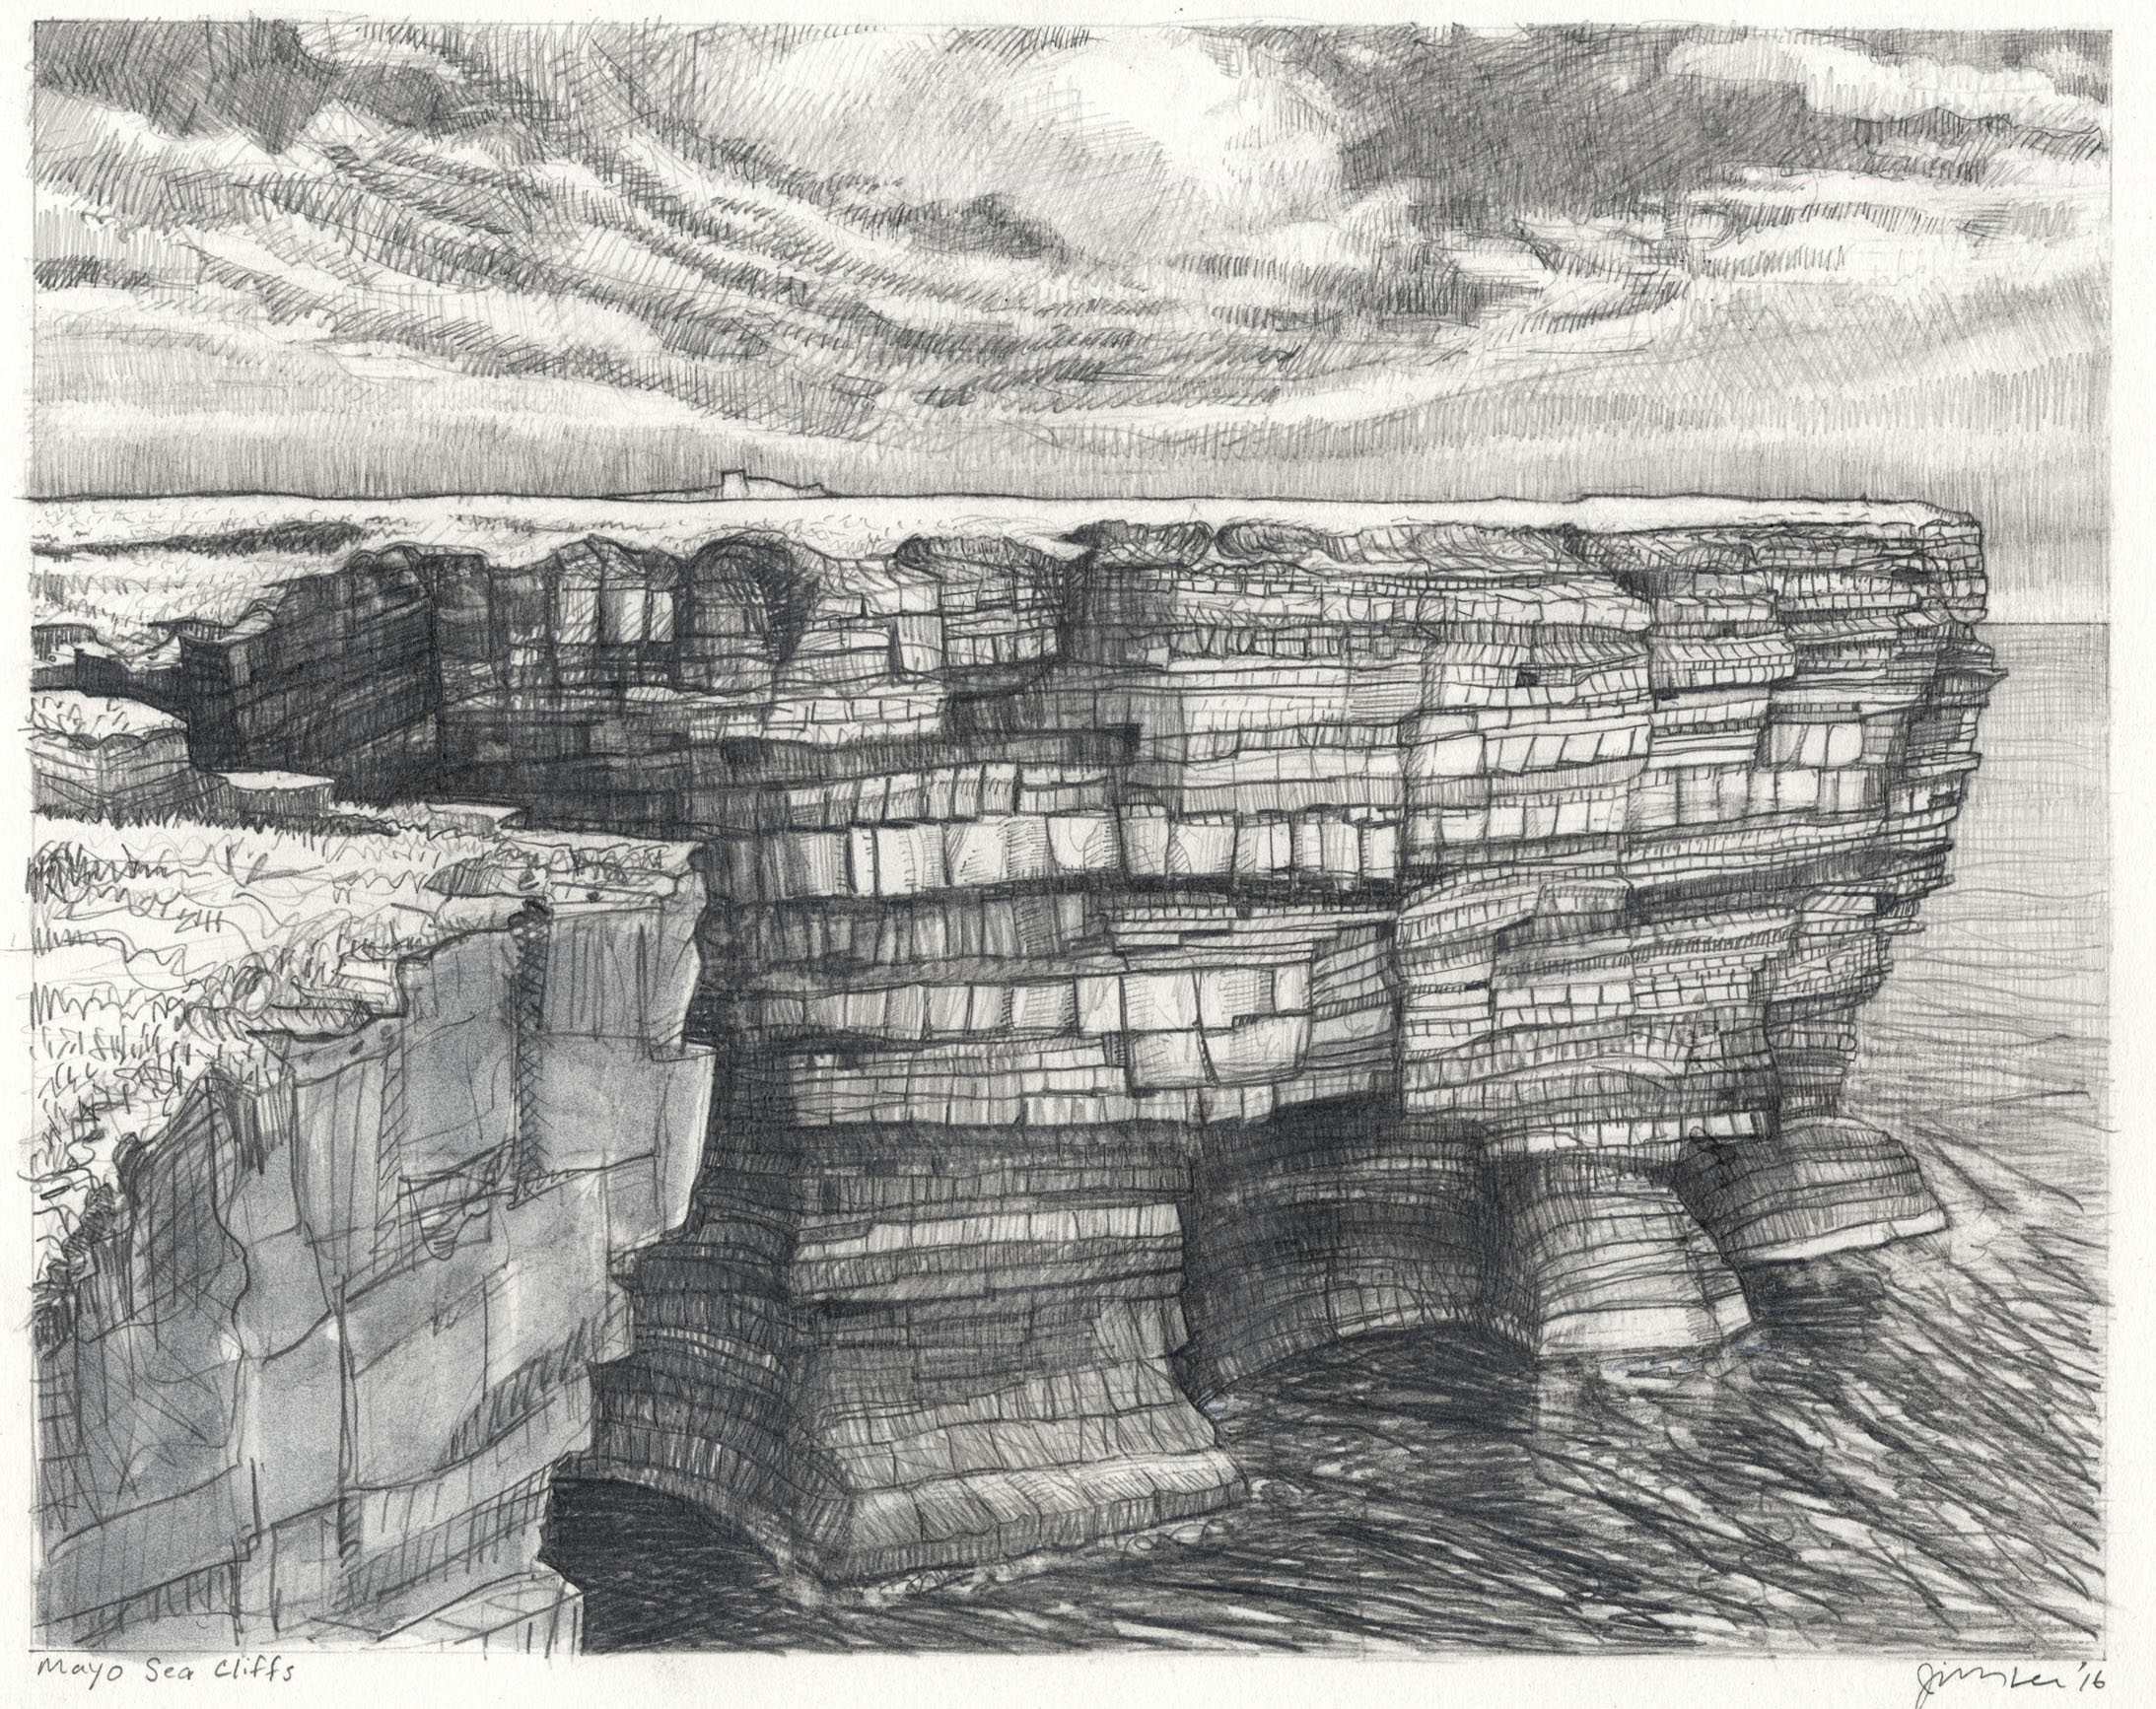 "Mayo Sea Cliffs   Pencil, 11x14"", 2016"